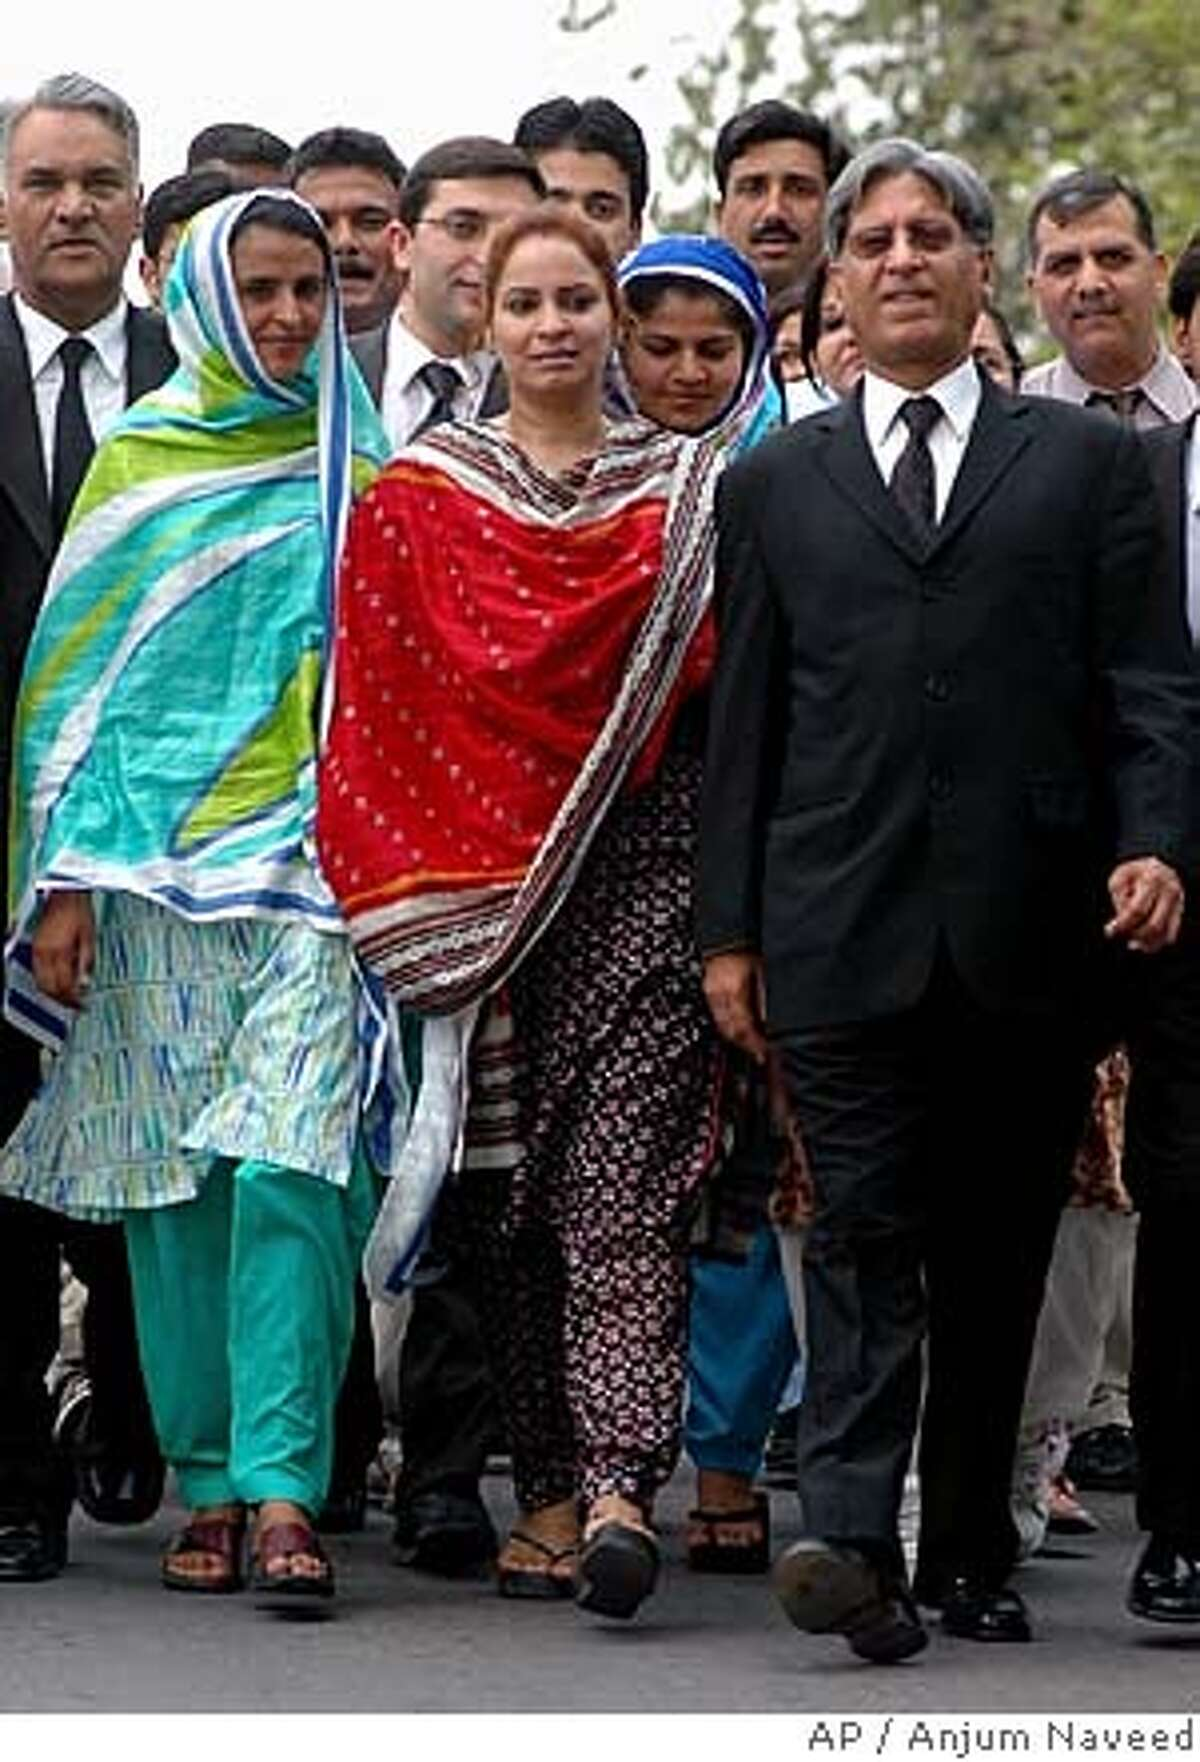 Pakistani rape victim Mukhtar Mai, left, accompanied by her lawyer Aitzaz Ahsan, right, and her supporter Nargis Faiz Malik, center, leaves from Supreme Court after the court decision, Tuesday, June 28, 2005 in Islamabad, Pakistan. Pakistan's Supreme Court overturned the acquittals of 13 suspects in the gang rape of Mai, whose plight drew international attention, and ordered them re-arrested, court officials and a lawyer in the case said. (AP Photo/Anjum Naveed) Mukhtaran Bibi (left), supporter Nargis Faiz Malik (center) and lawyer Aitzaz Ahsan leave the Supreme Court in Islamabad.